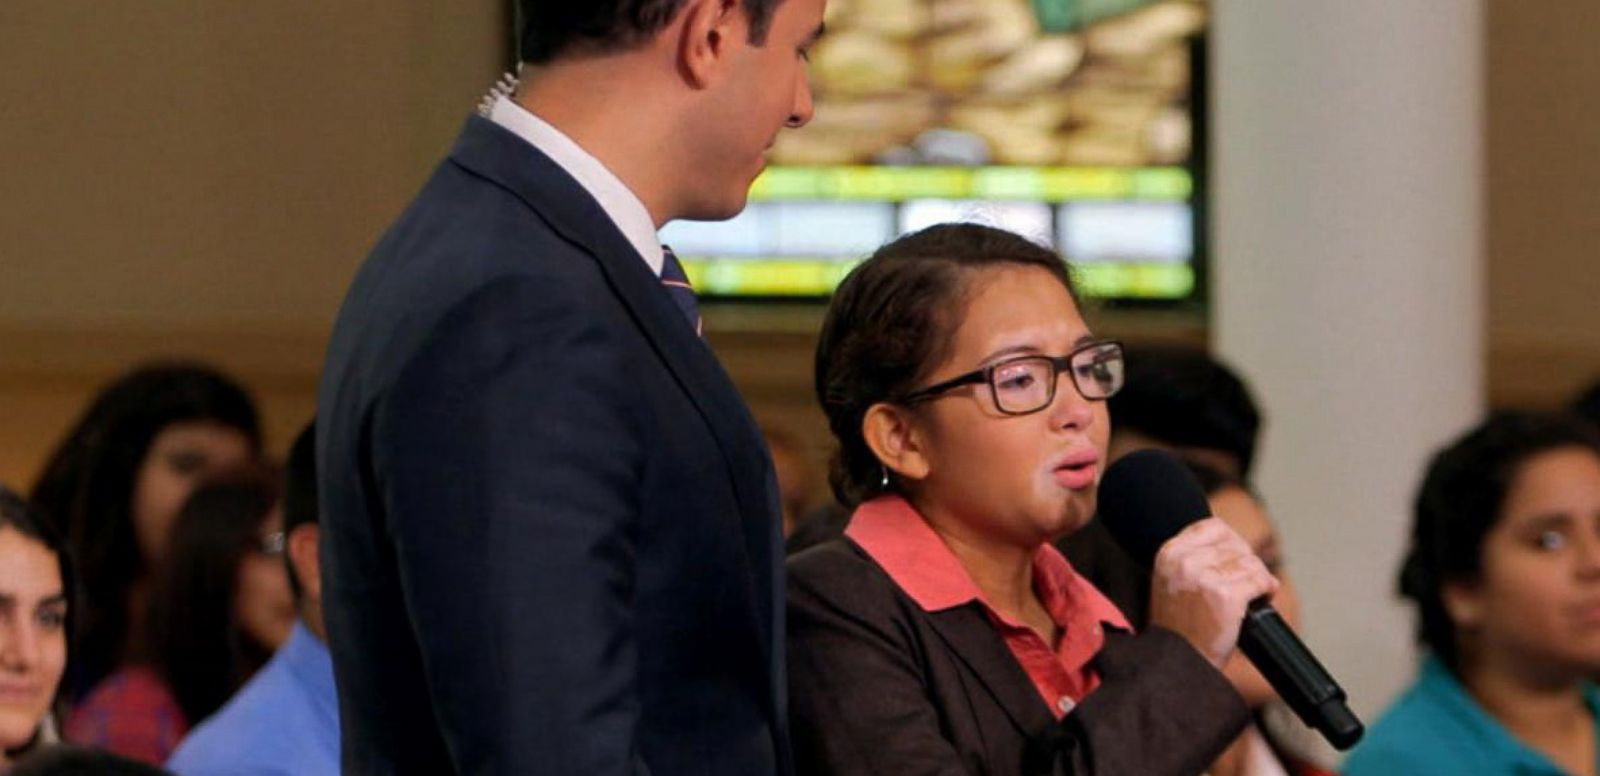 VIDEO: Pope Francis Asks Chicago Teen to Sing for Him: Part 1